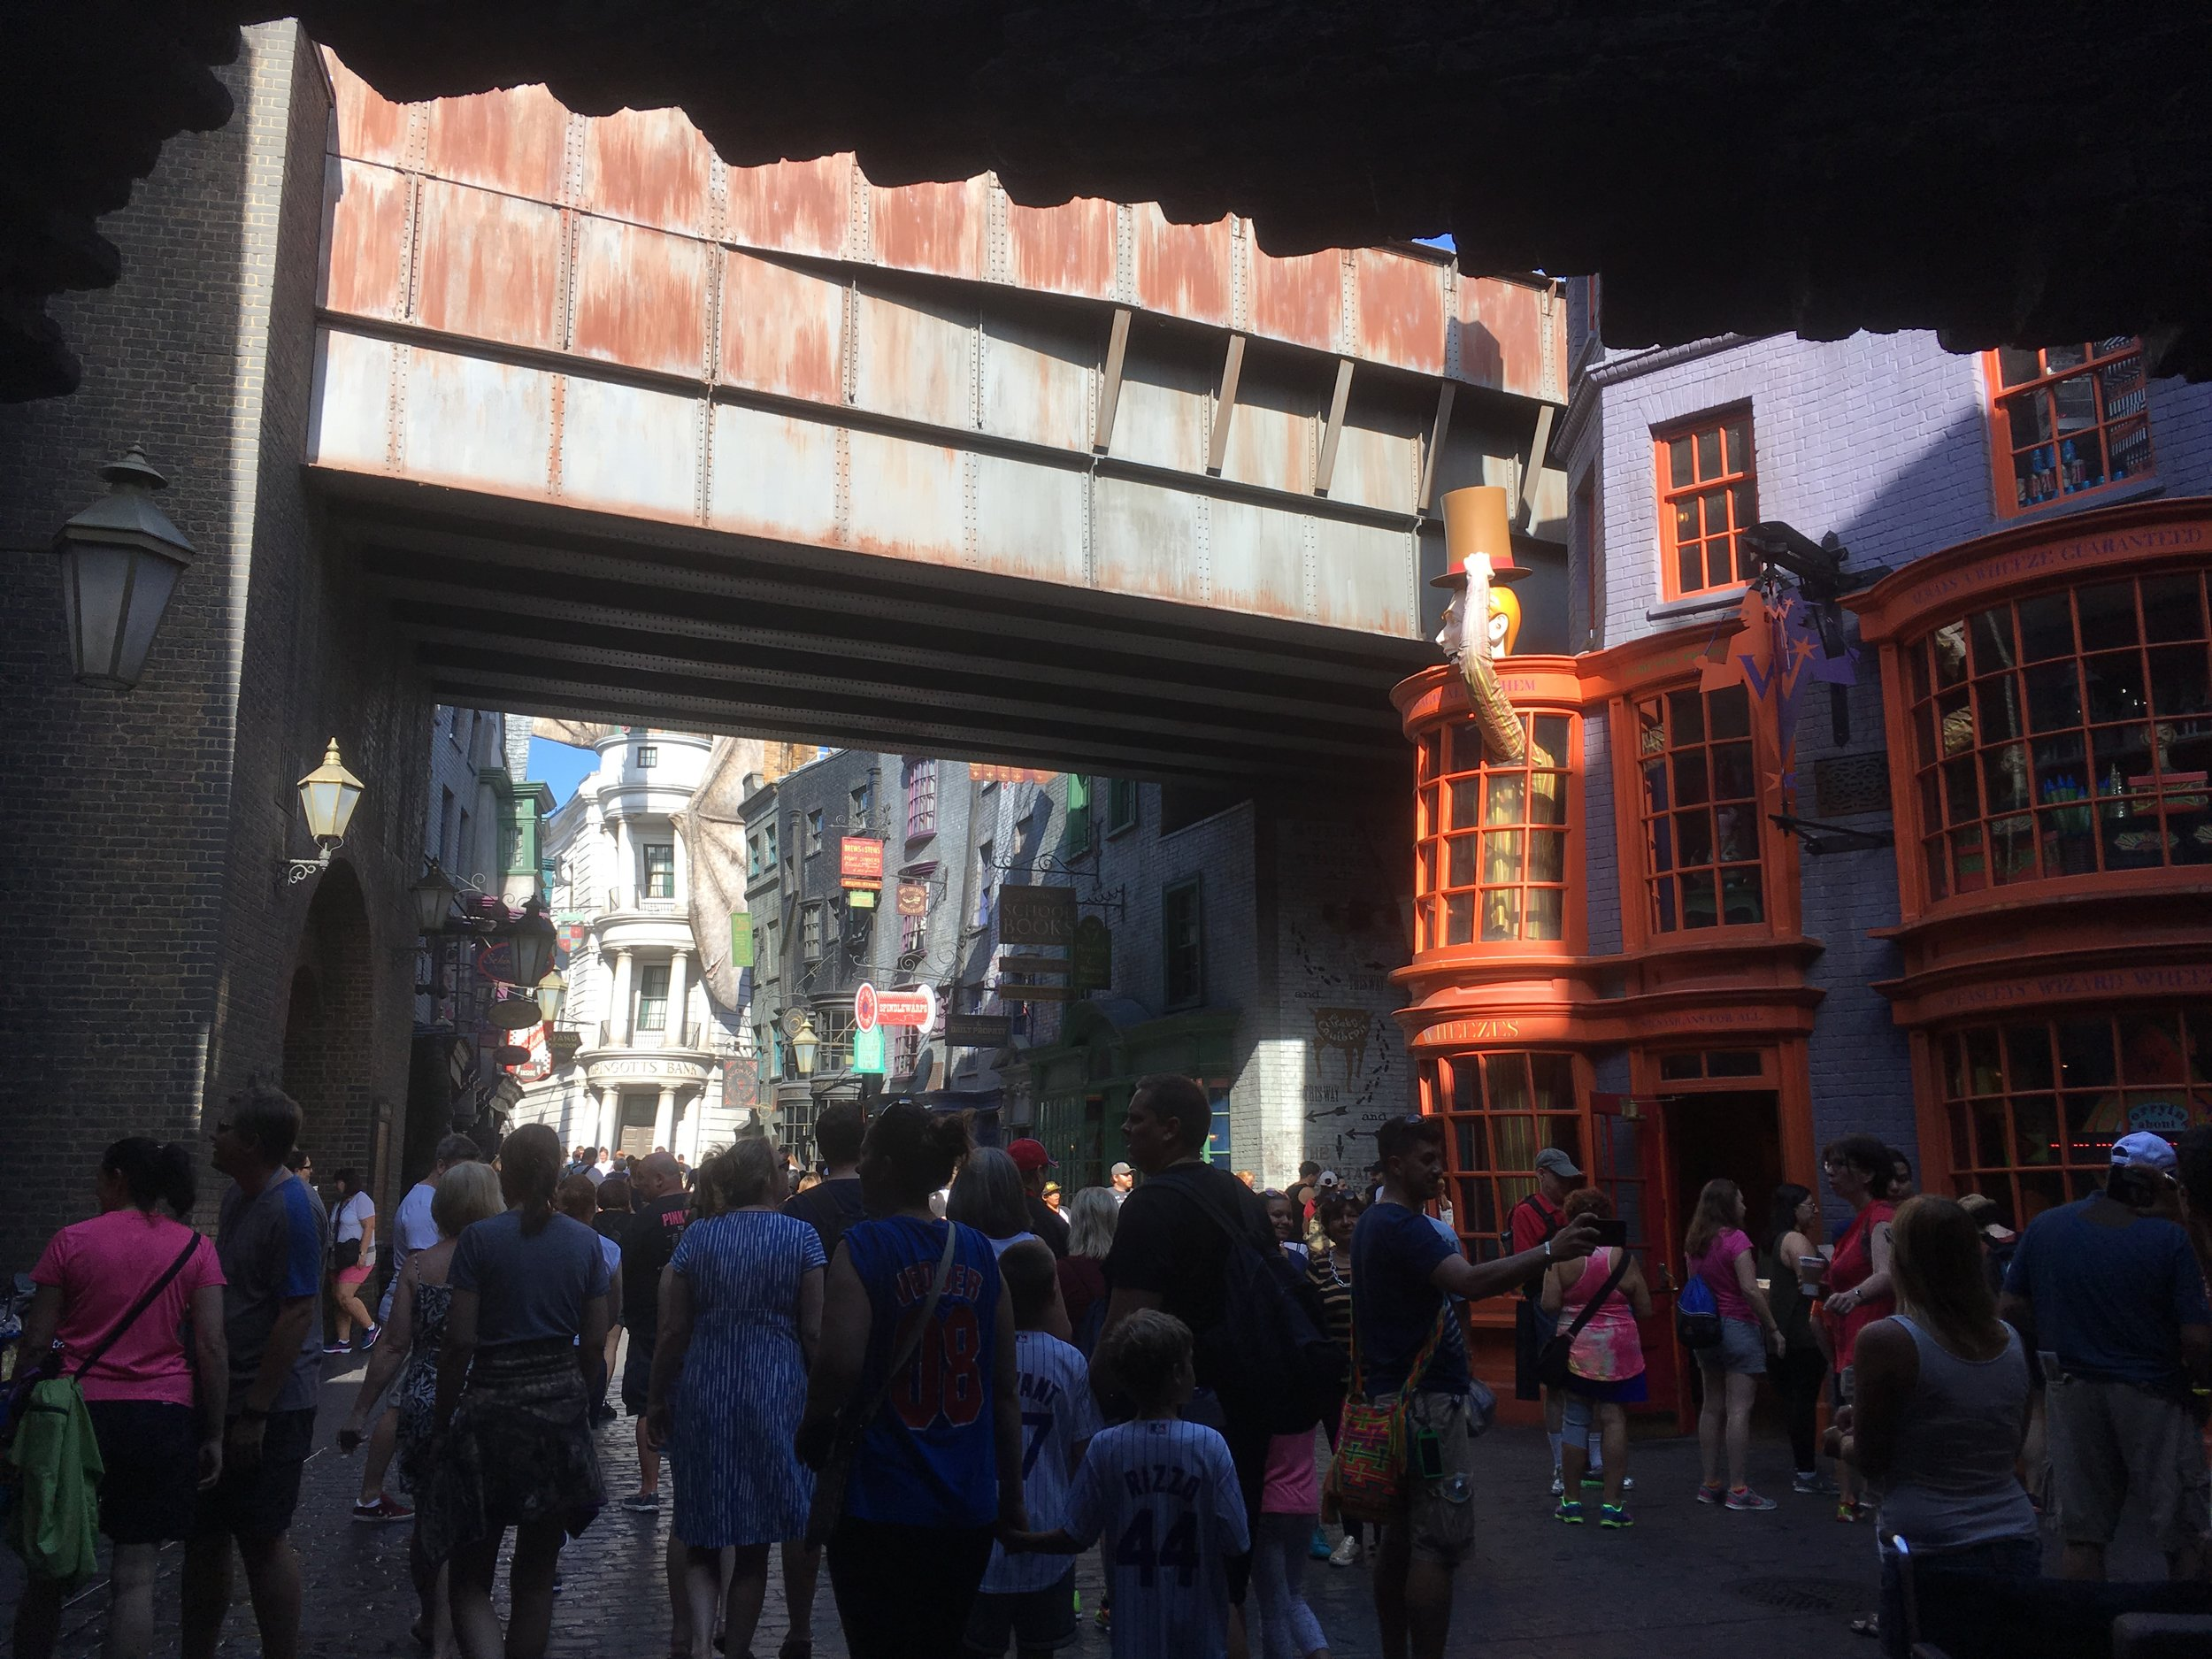 Begin the pictures of Diagon Alley!  I actually don't have that many, but the few I have really show the incredible level of attention to detail that was paid when creating this amazing area.